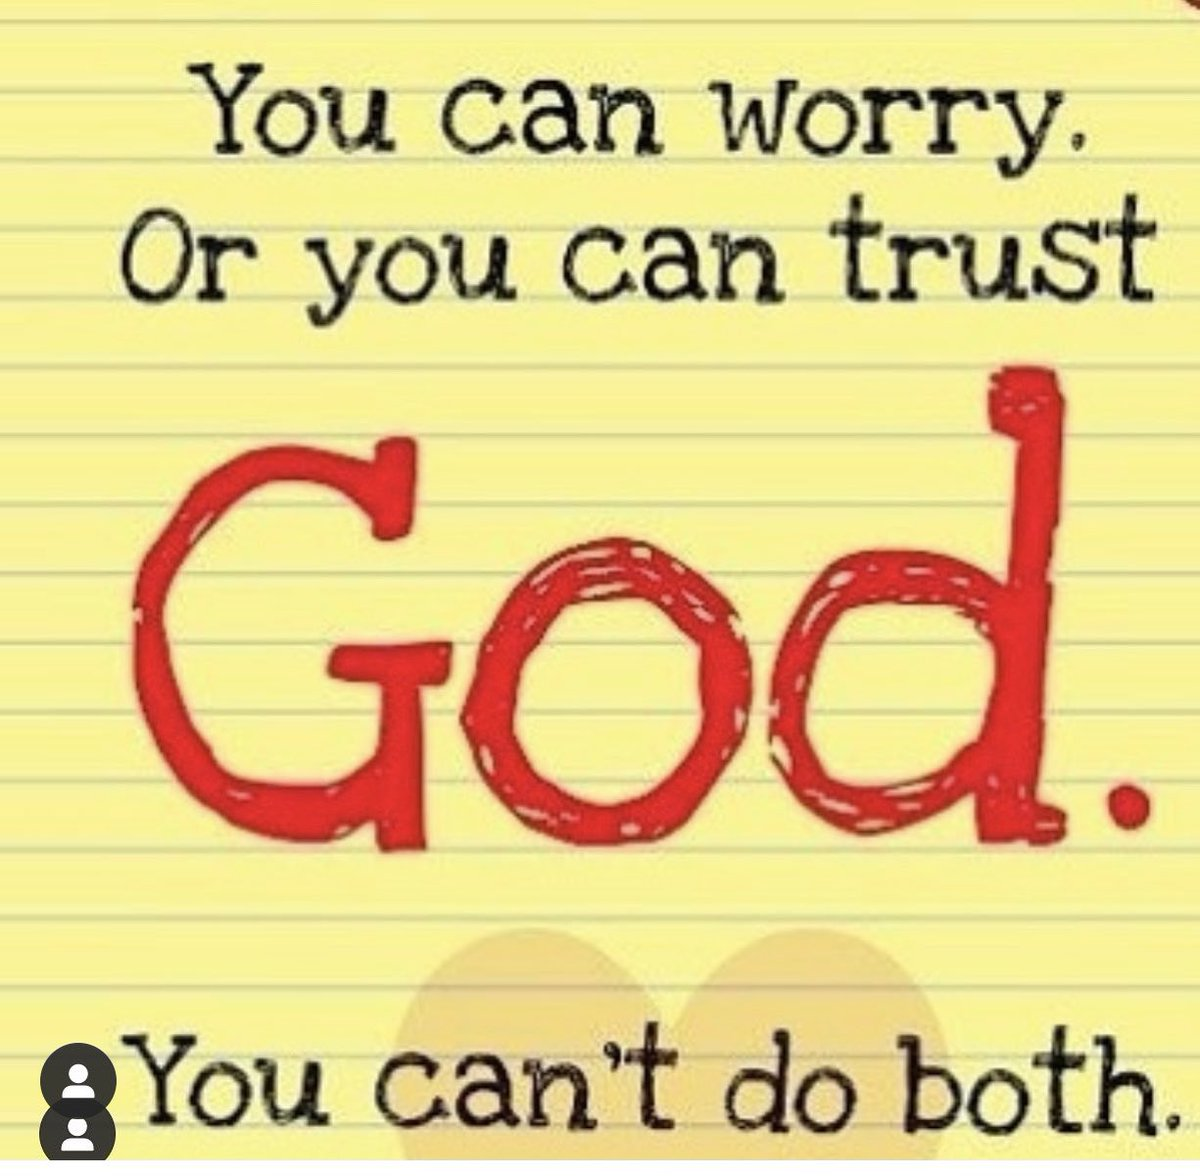 So much uncertainty creates so much anxiety . I don't know about you but I choose to TRUST God today and hand my worry over to HIM 🙏